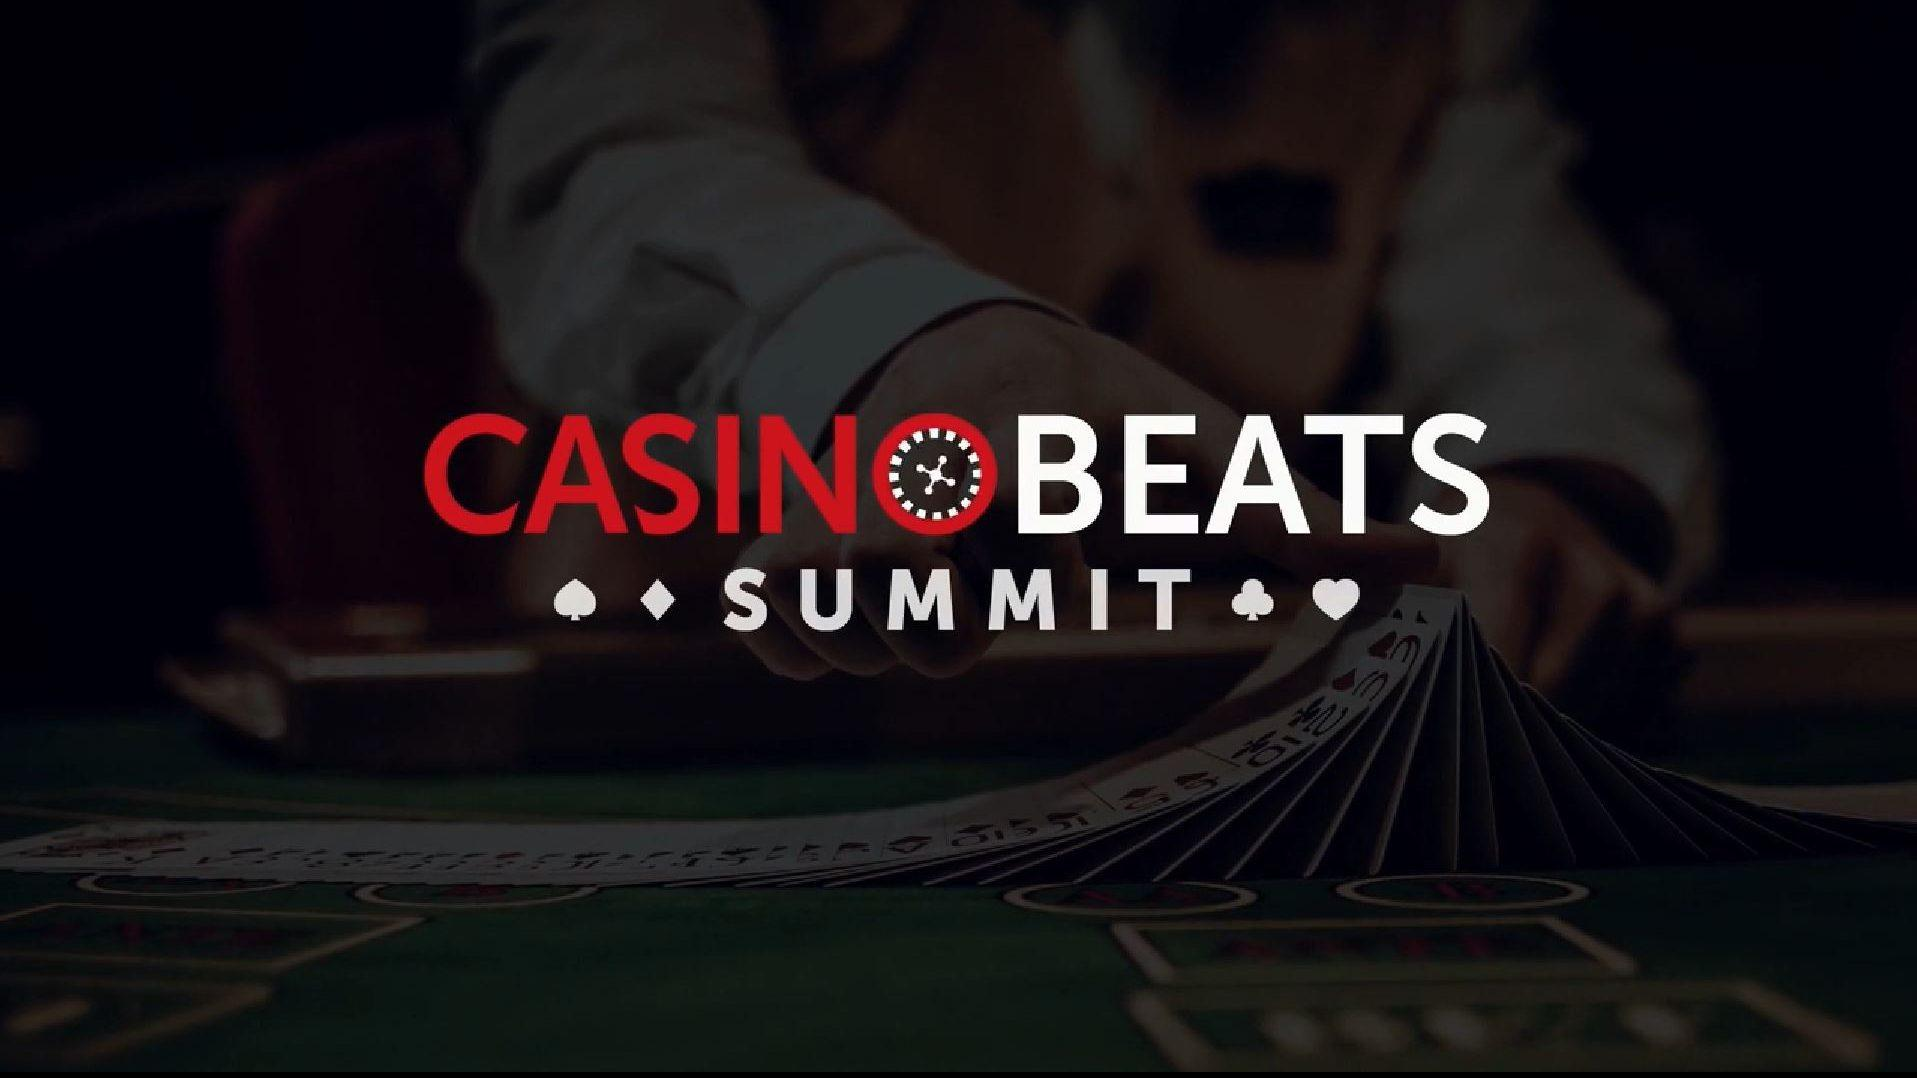 CasinoBeats Summit 2019